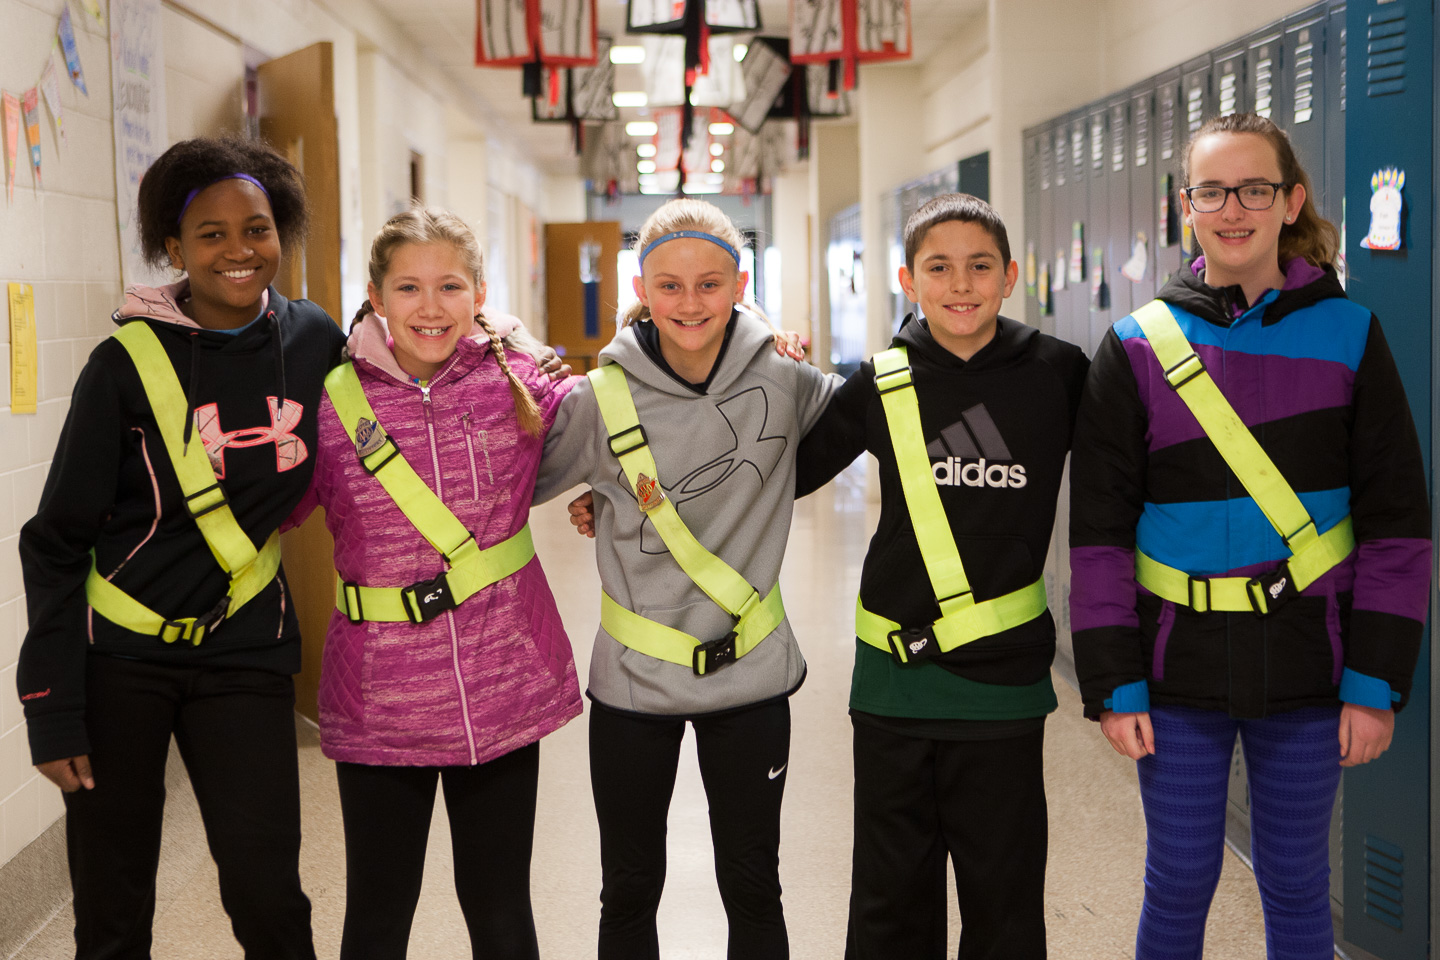 6th Graders Return from Camp at Noon on Friday | Salt Creek Elementary